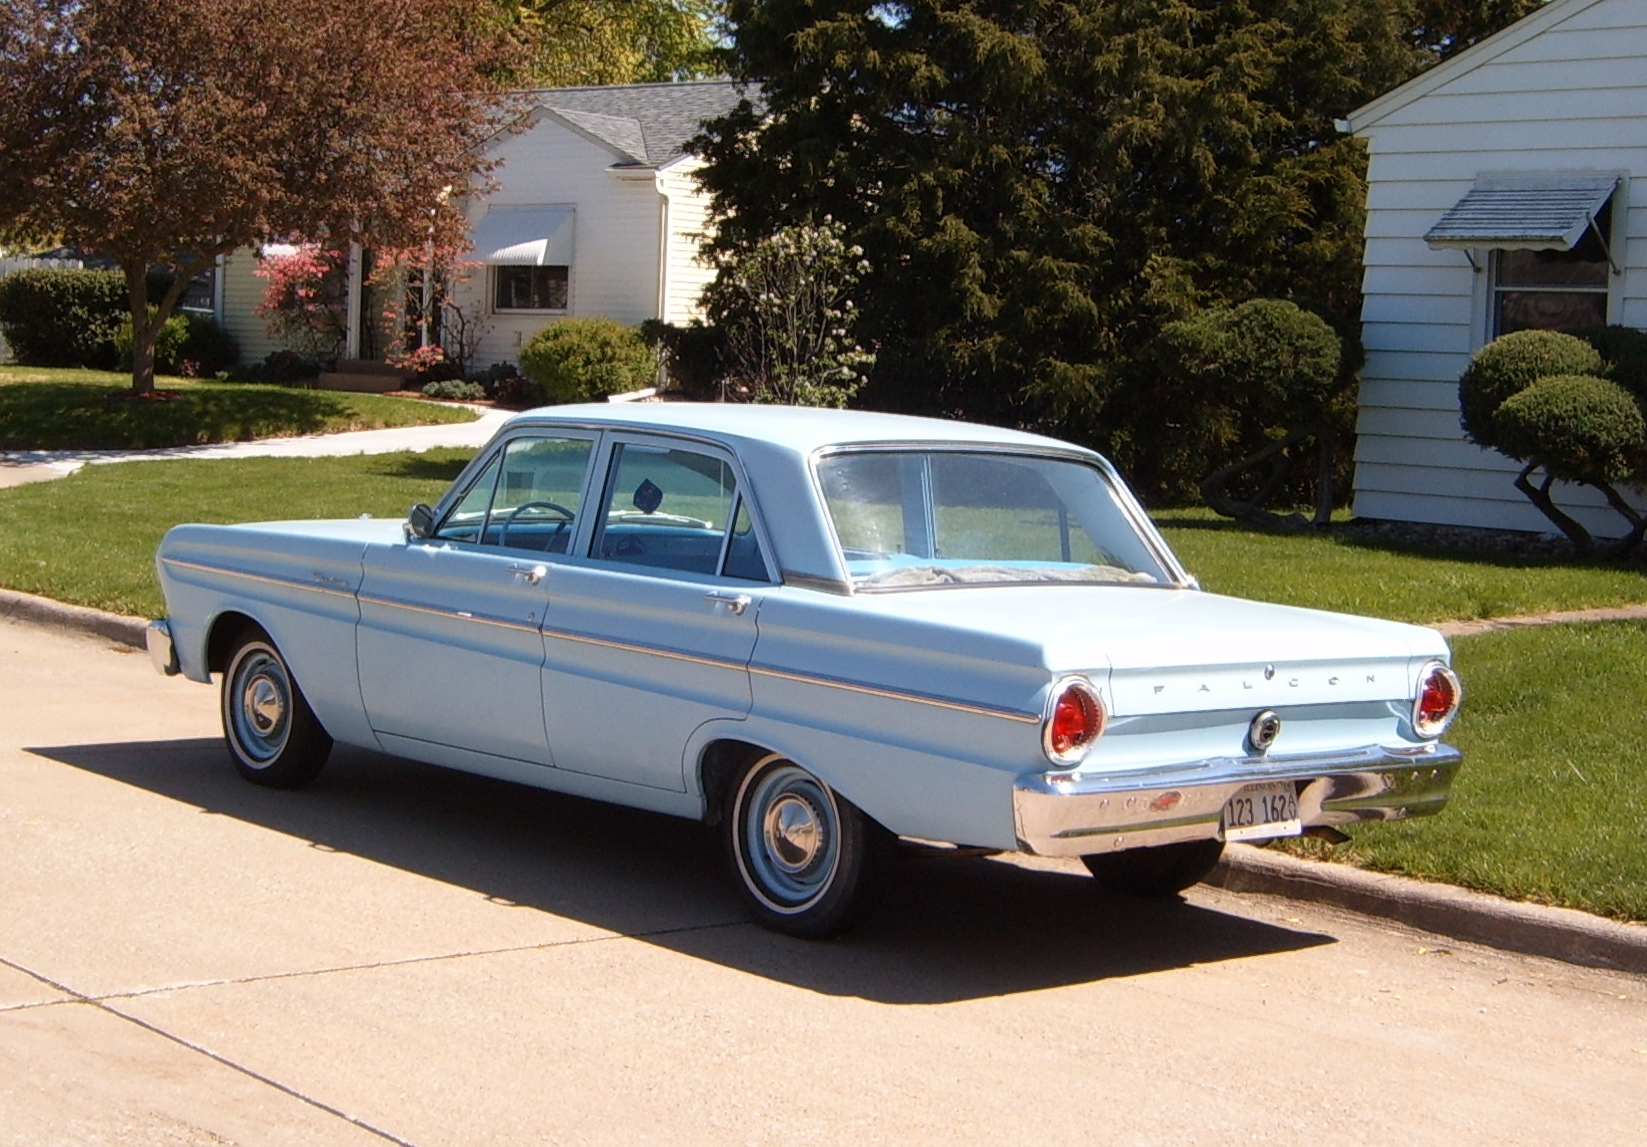 1964 ford falcon 4 door find used 1964 ford falcon 4 door 170 special - Standard Engine For The Falcon Was A 144 Cid Straight Six With 85 Hp 4200 Rpm And A Single Barrel Holley Carburetor Though You Could Get The 170 Six Or